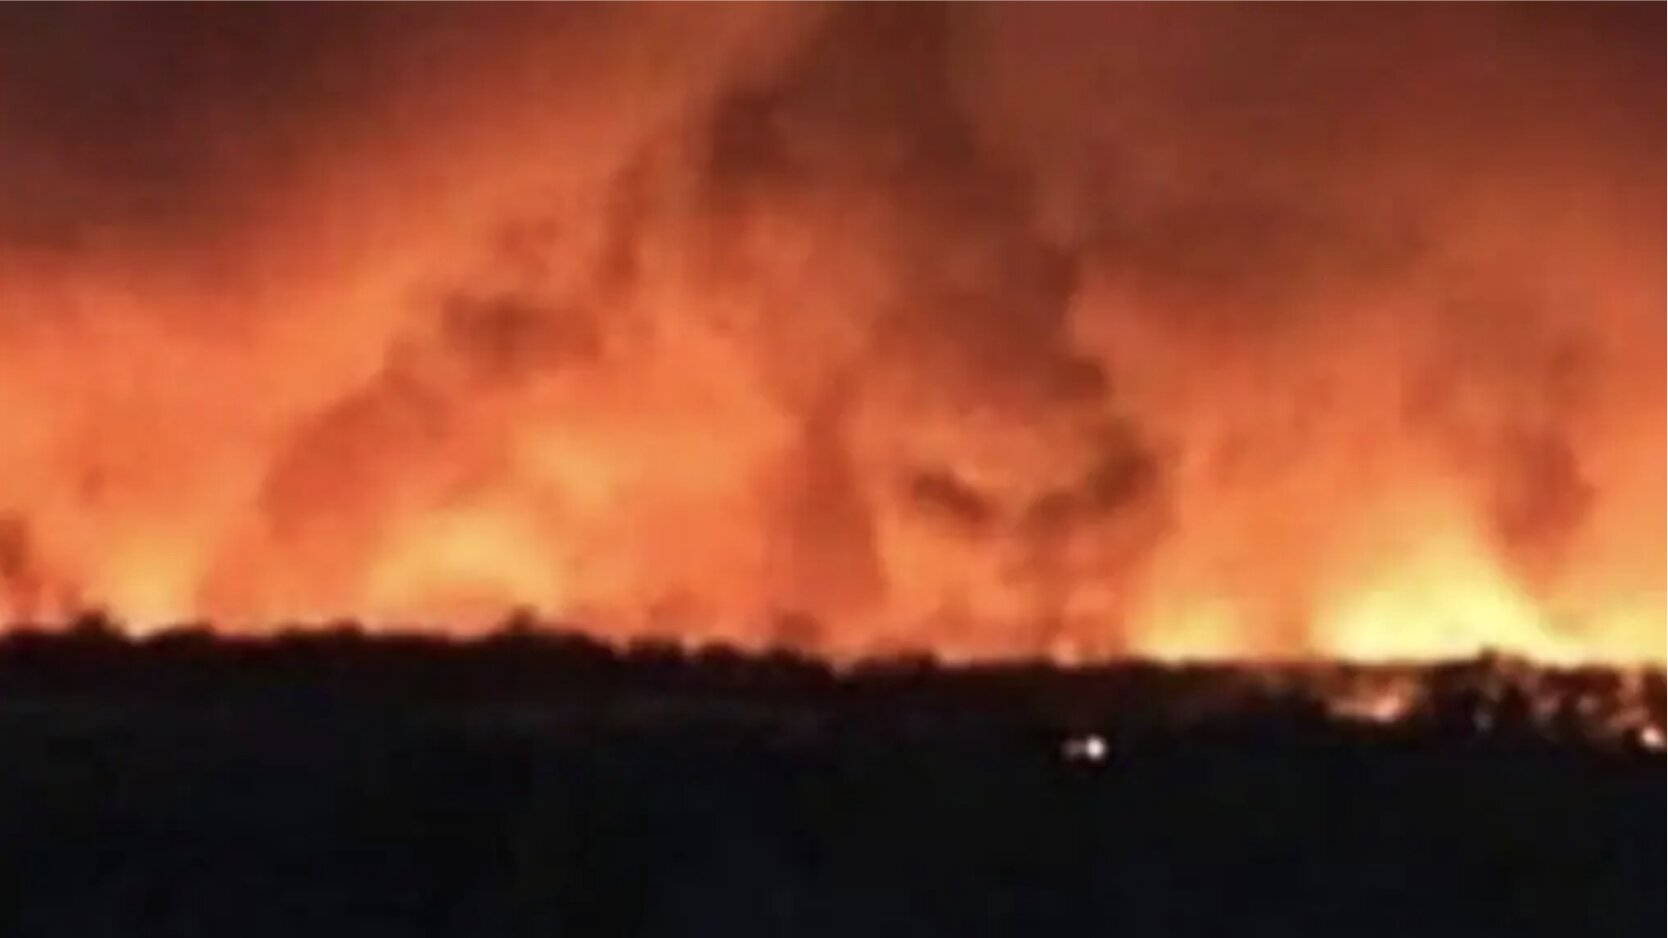 MAJOR SATANIC WORSHIP took place in Australia BEFORE the fires broke out there!!!